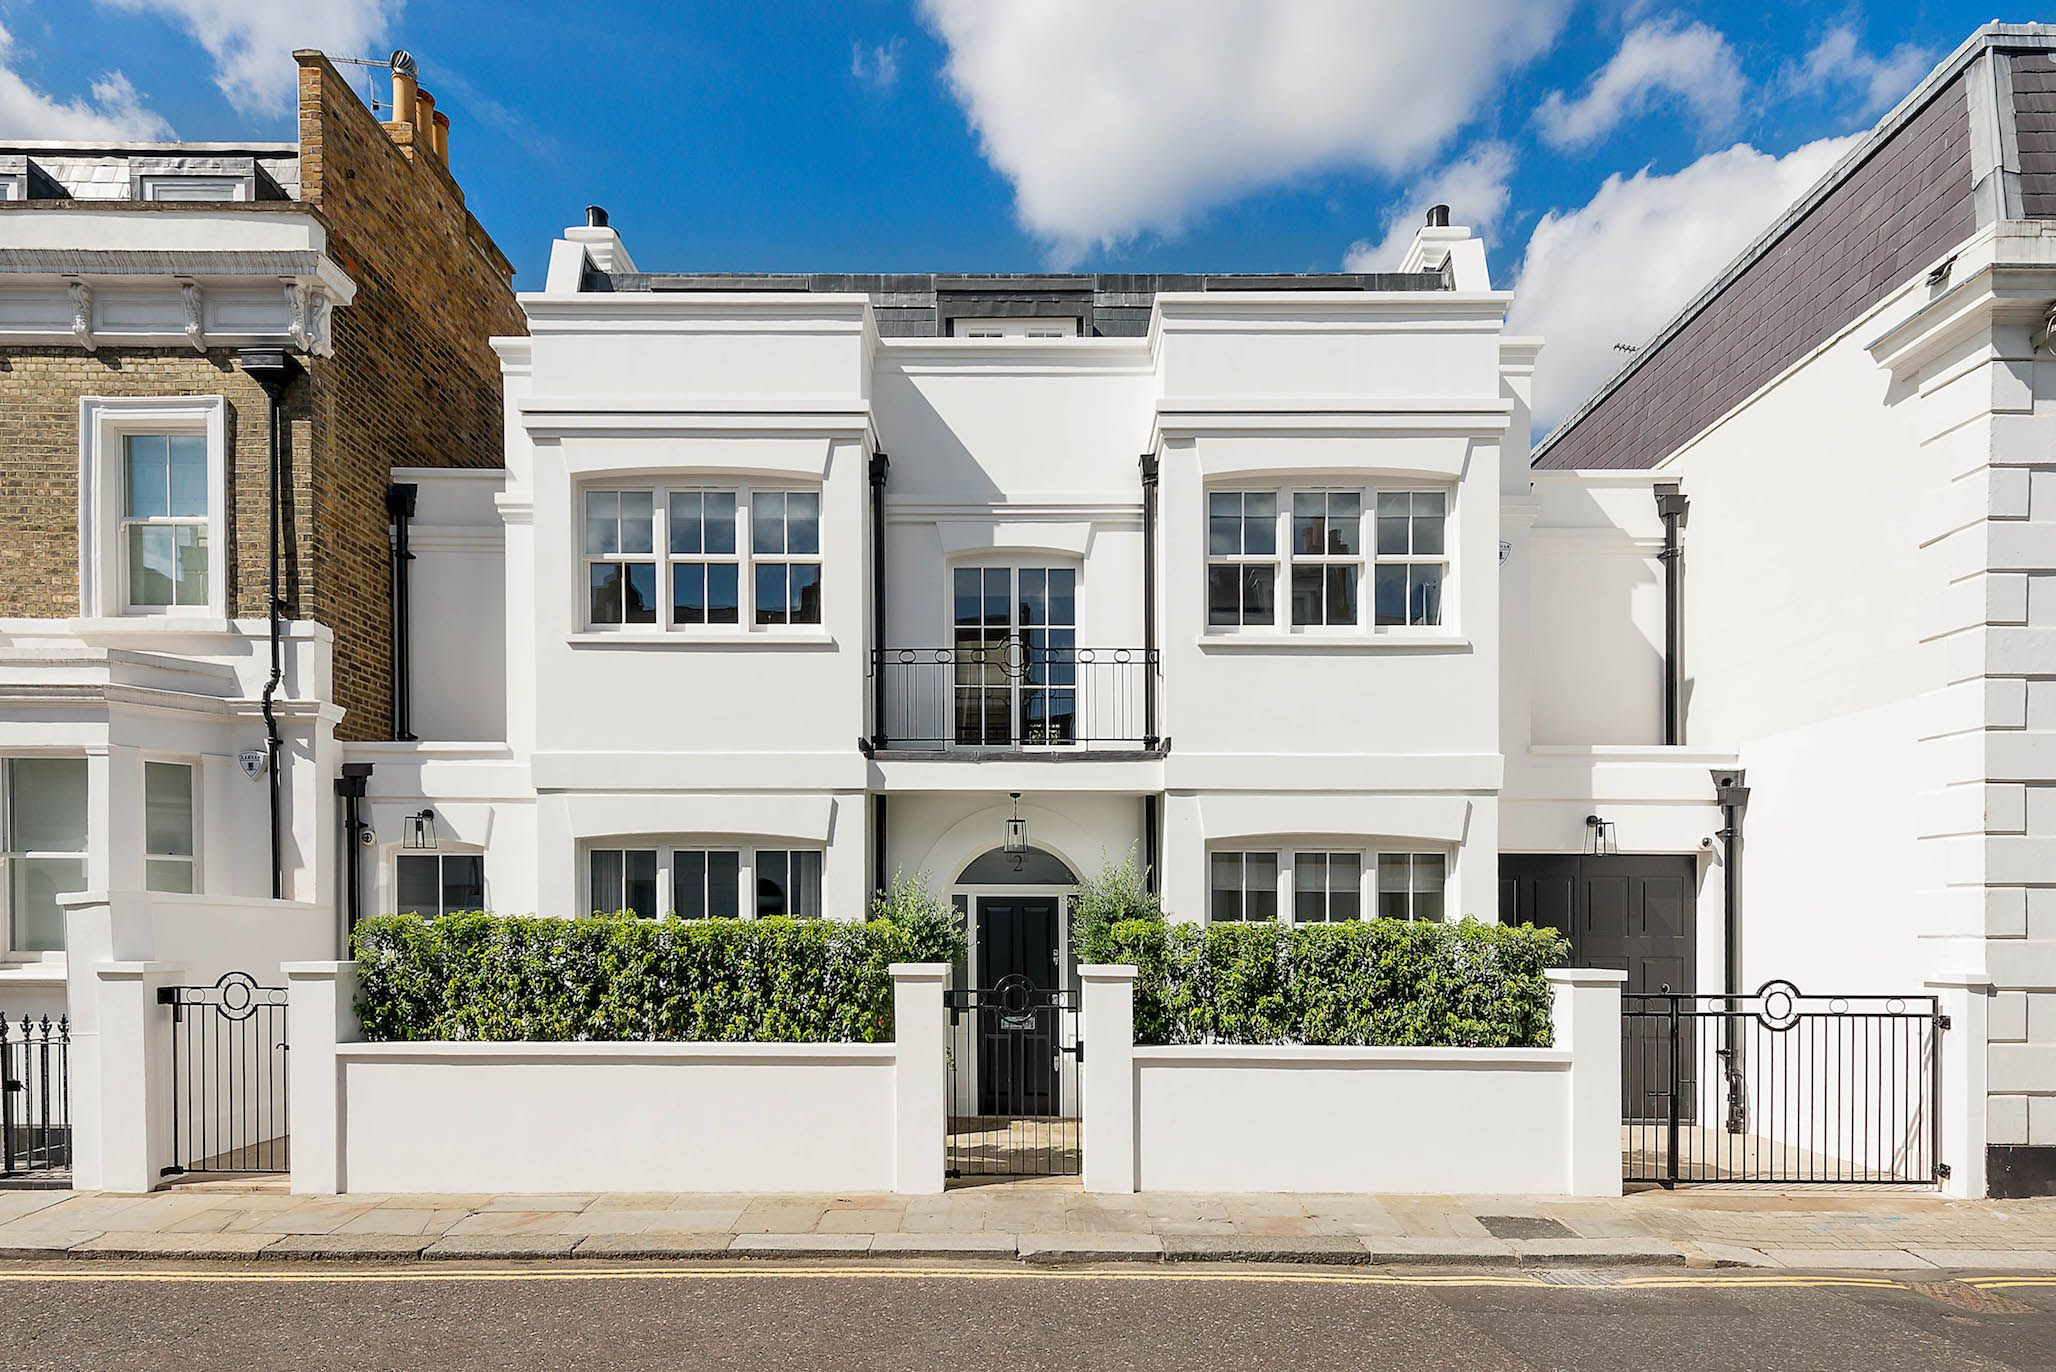 Family House With Spectacular Roof Terrace Garden For Sale In Chelsea